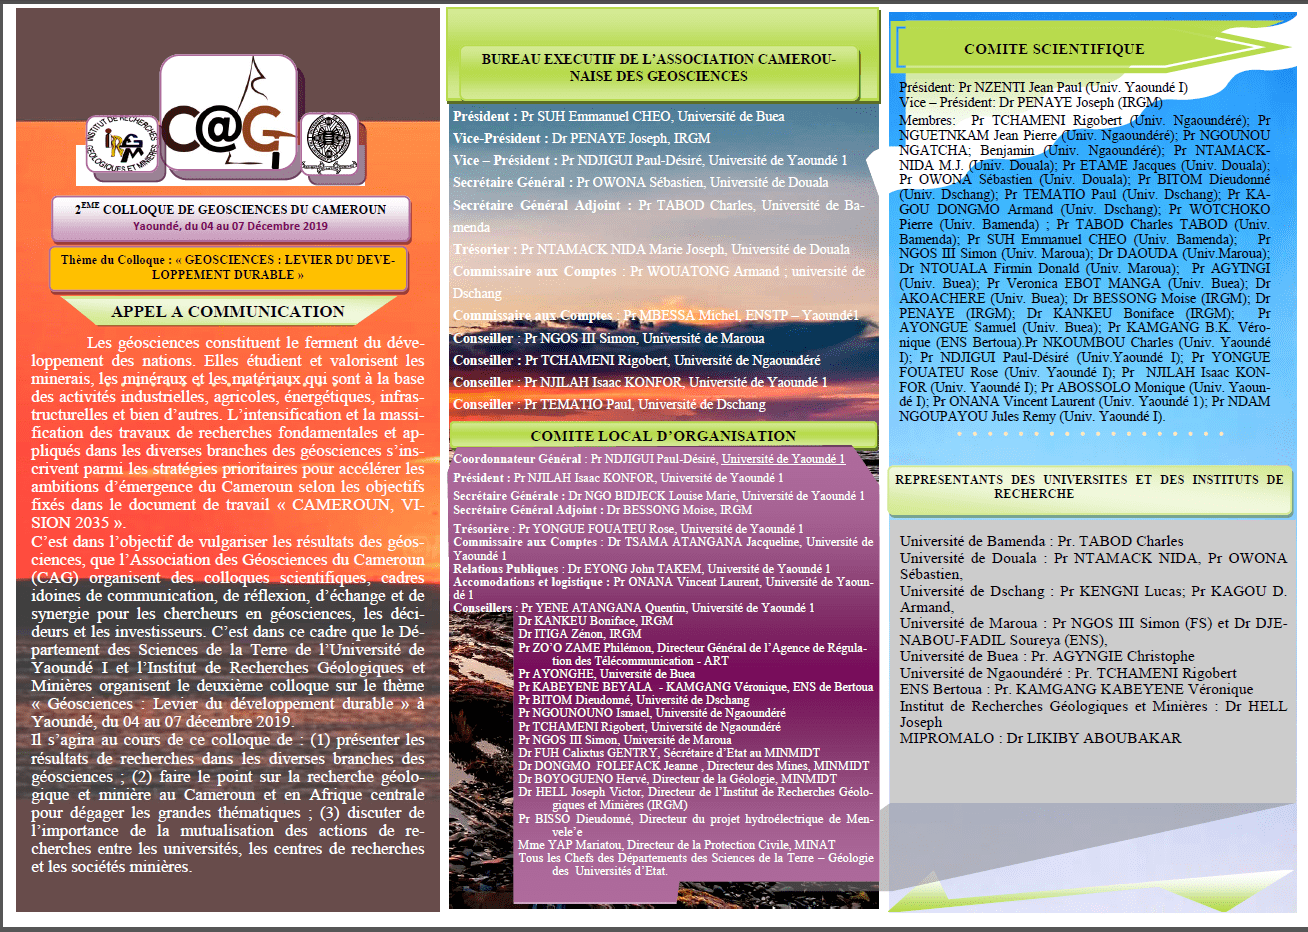 GEOSCIENCE COLLOQUIUM 2019,UniversitY of Yaoundé 1 – Institut of Mining and Géological Research 04 – 07 Décembre 2019